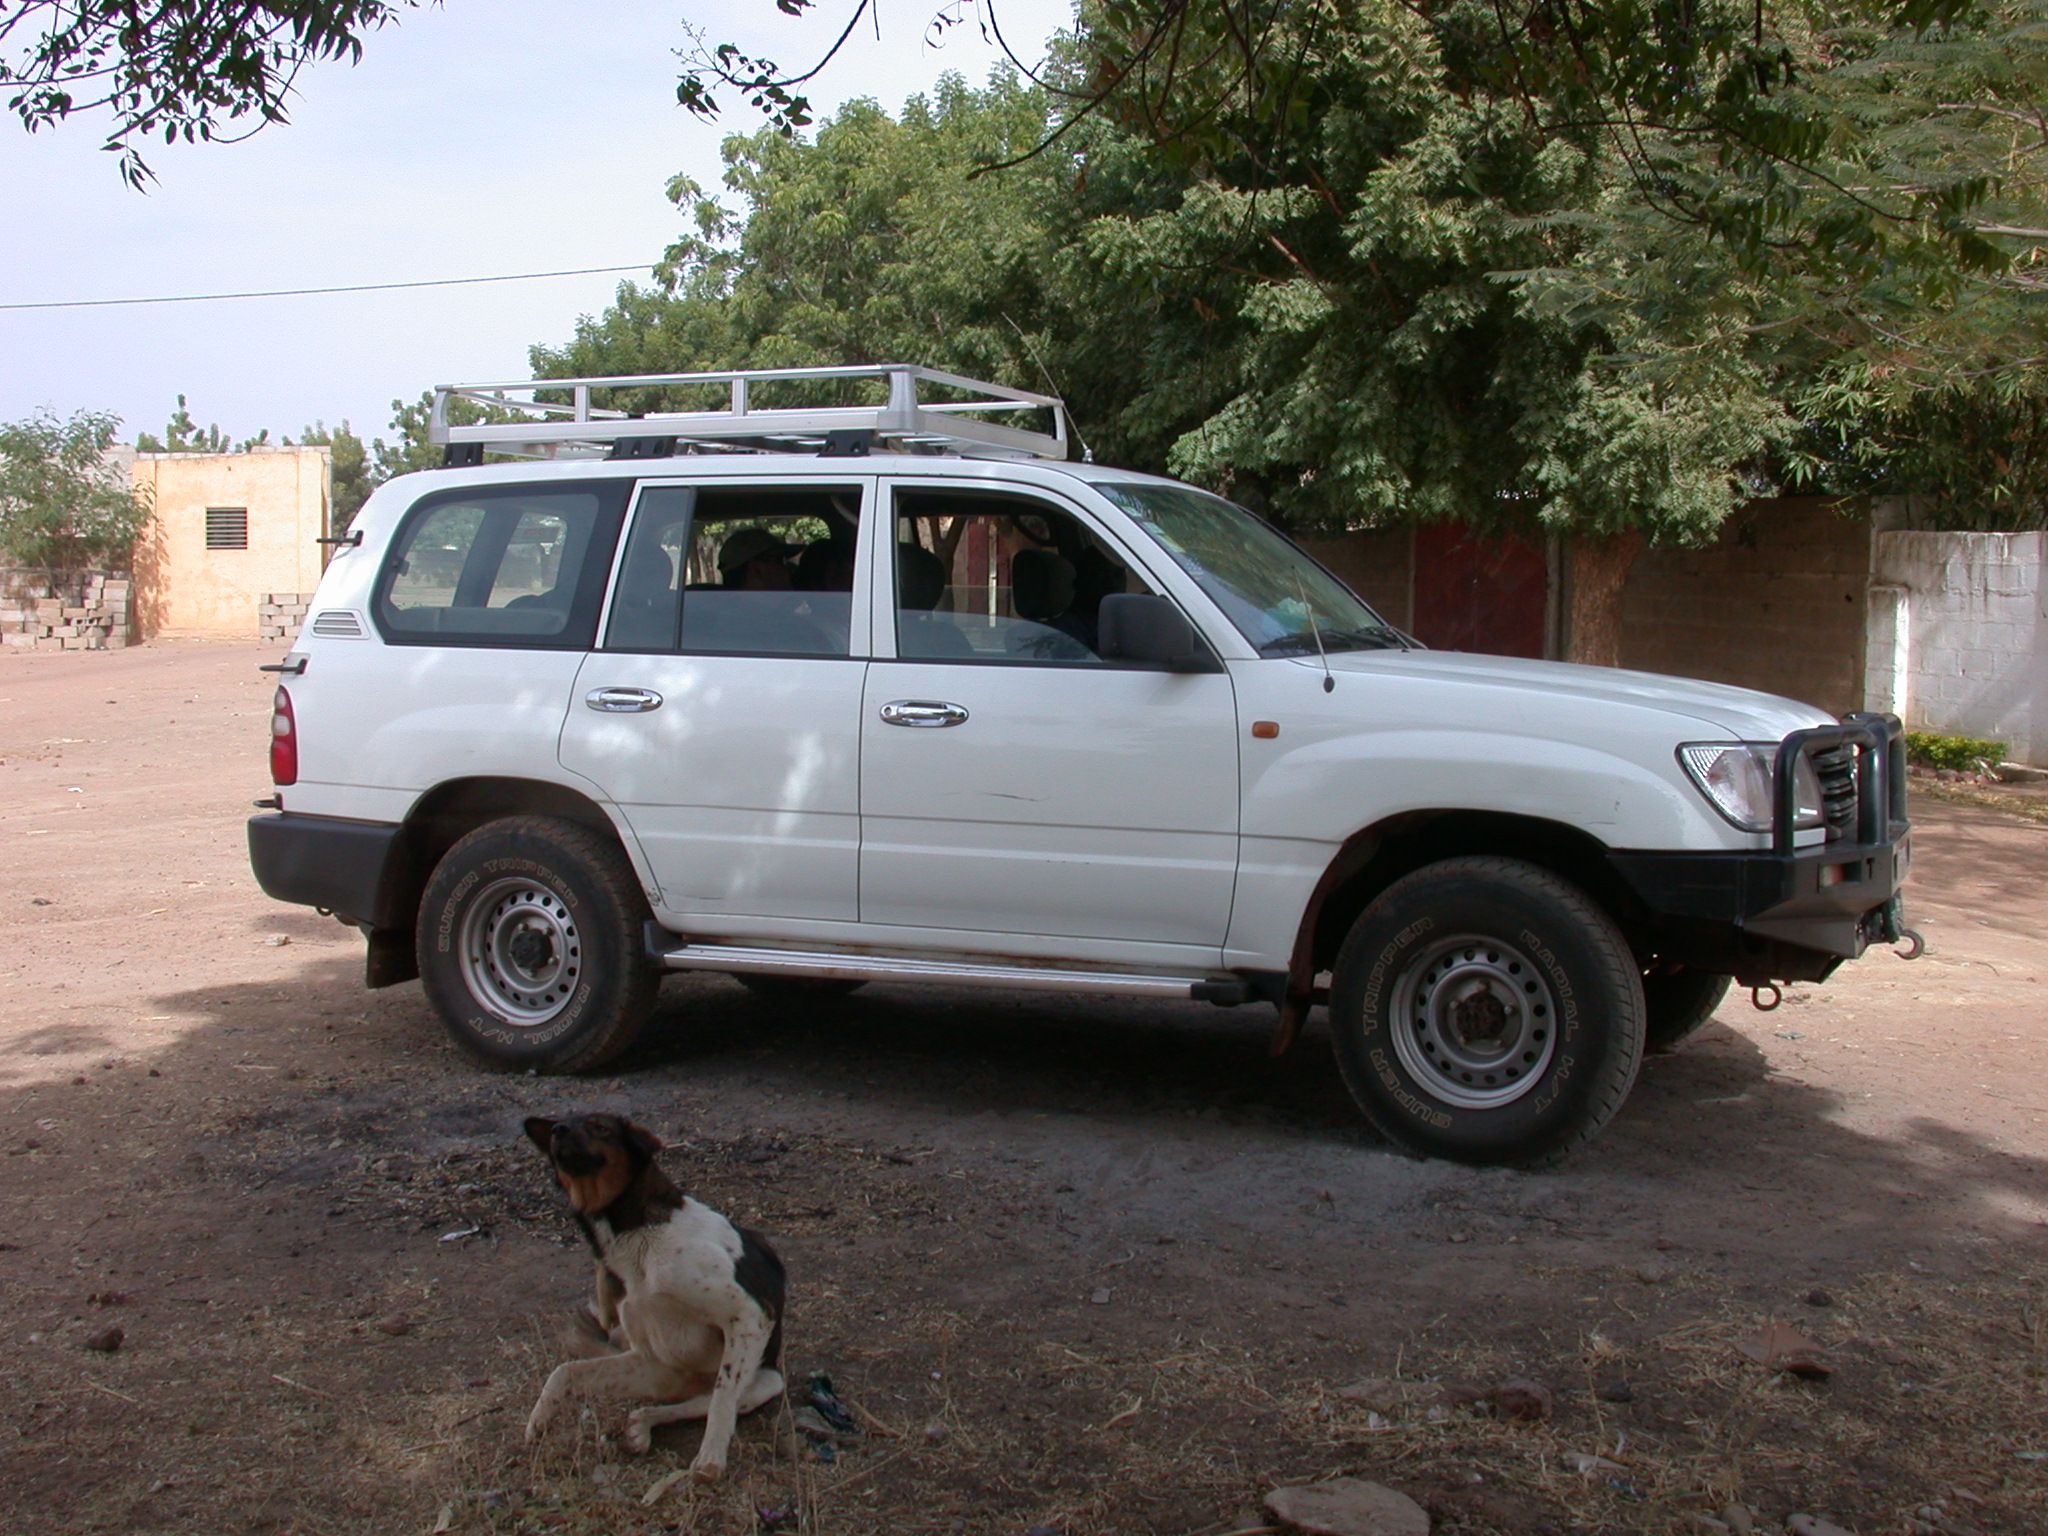 Four-By-Four Vehicle on Route From Bamako to Timbuktu, Mali